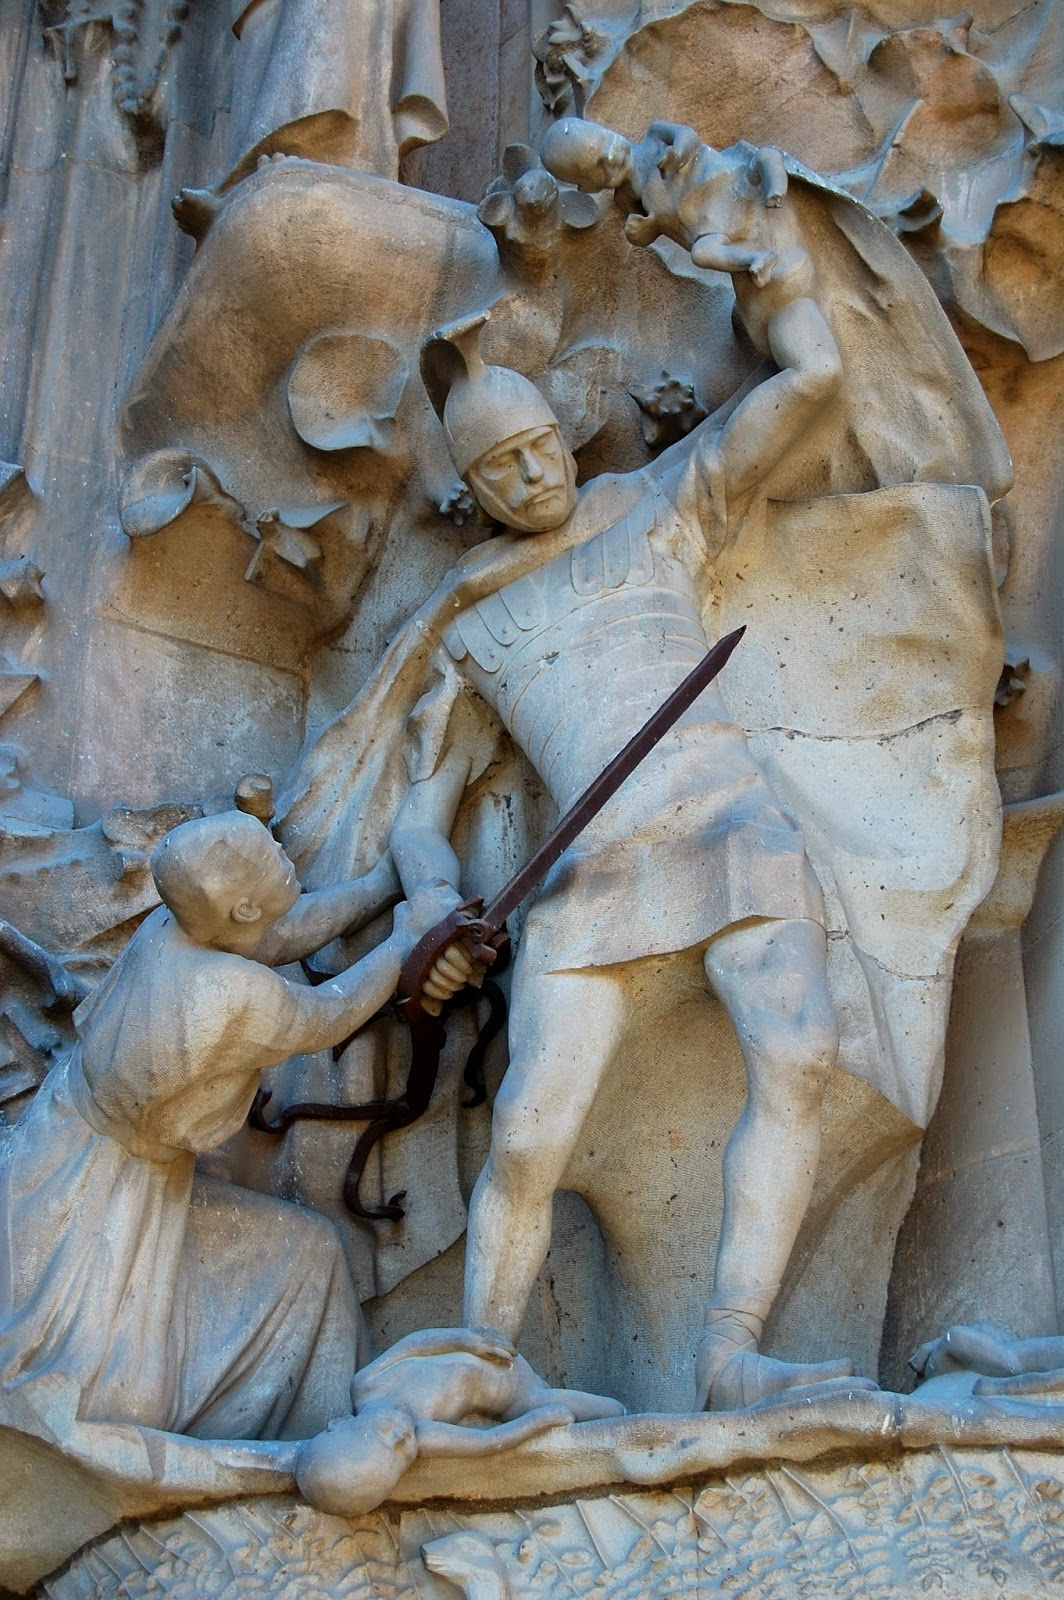 Roman legionnaire slaughters infants in the Portal of Hope, Nativity Facade